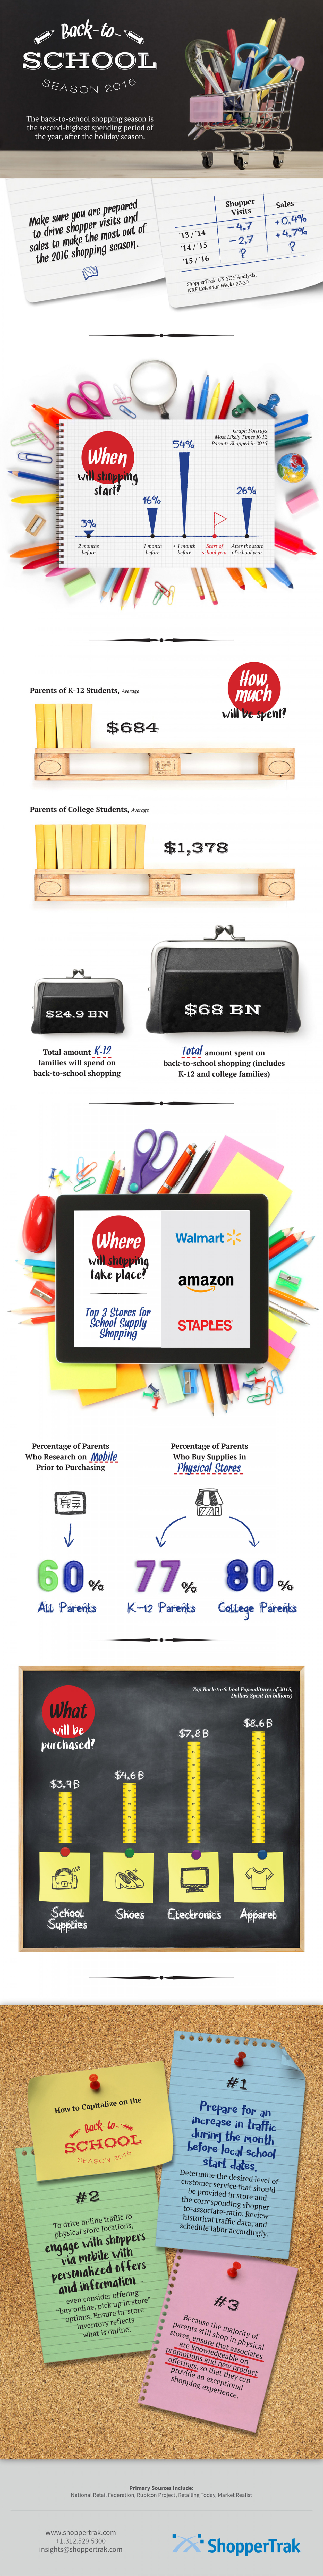 Back-to-school Shopping Statistics Infographic